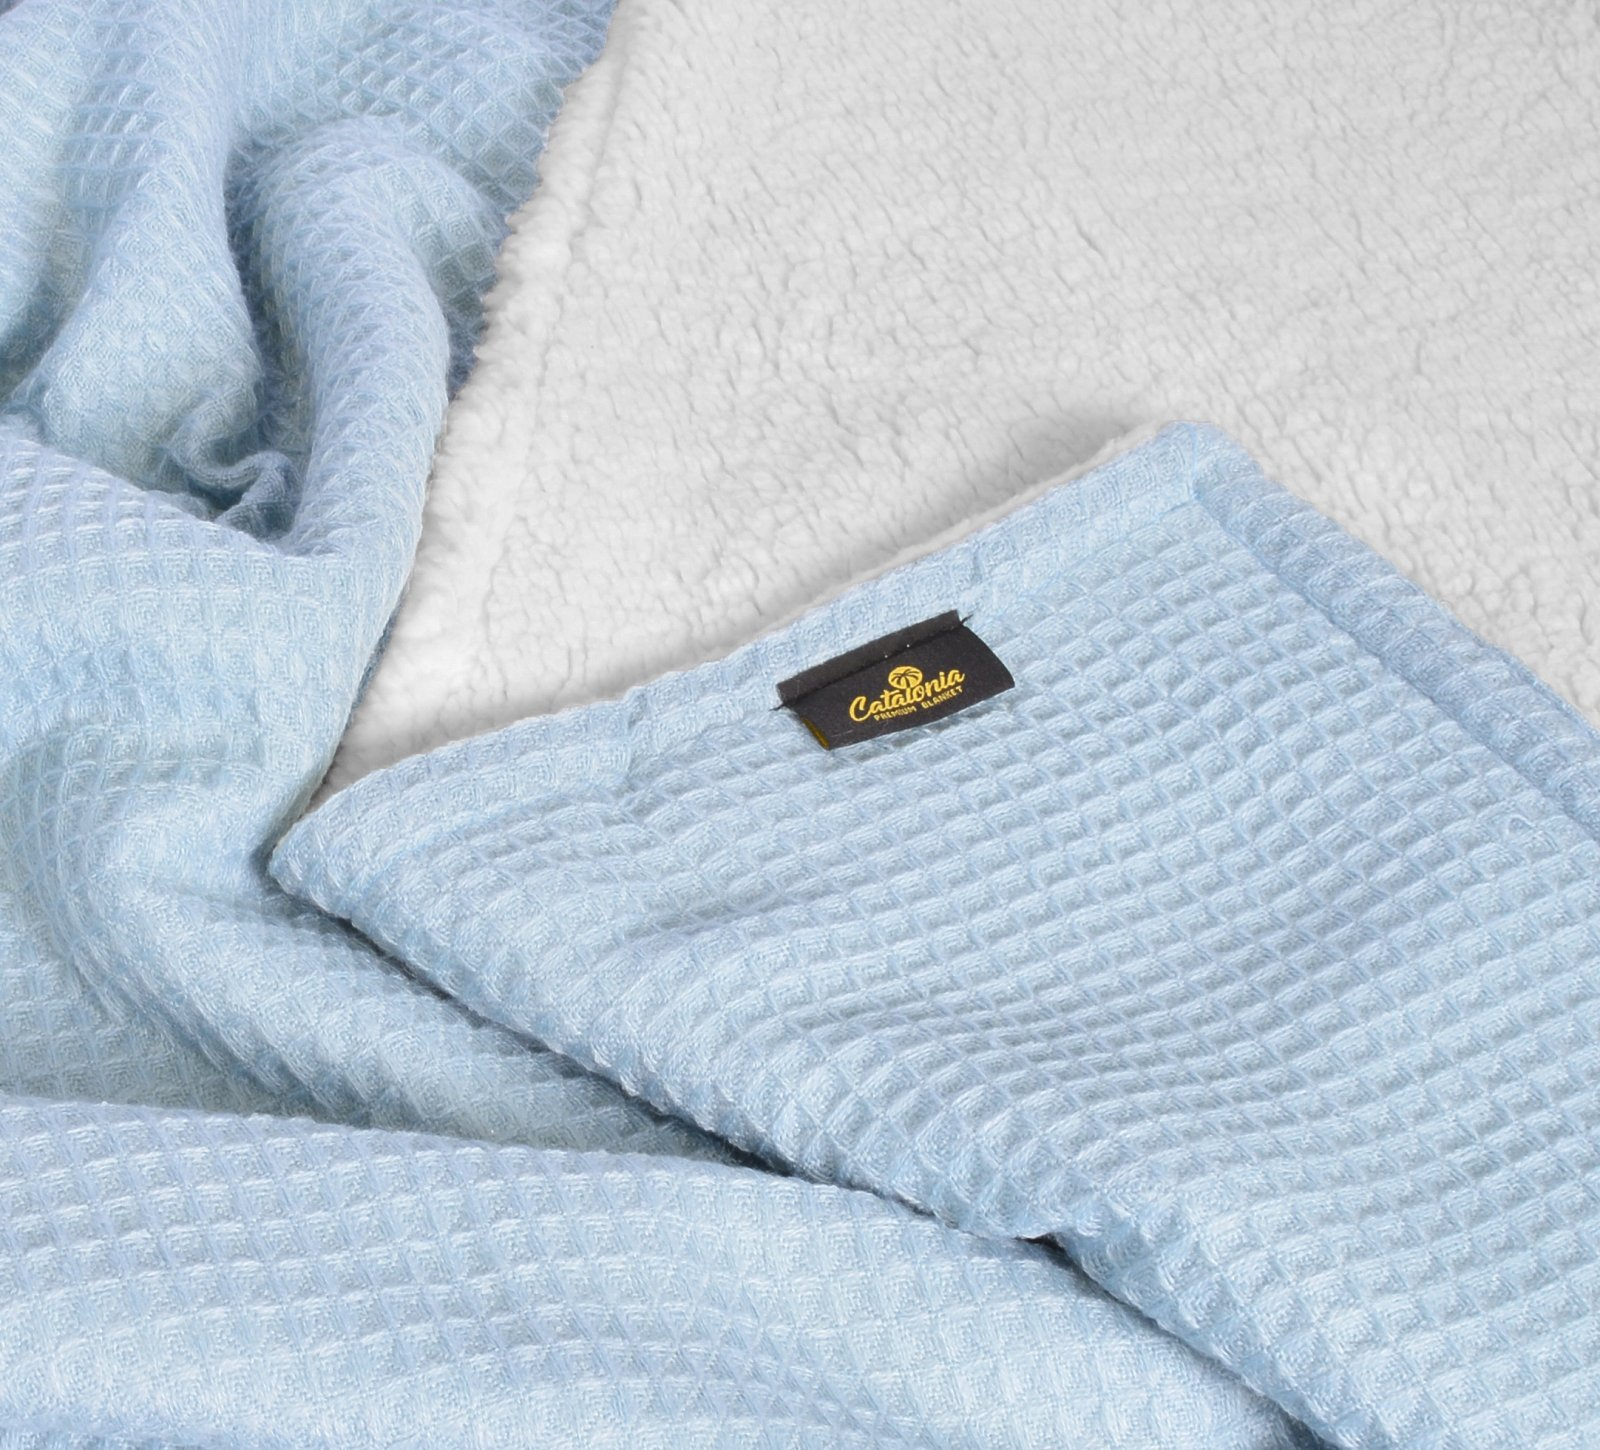 Super Soft Sherpa Throws,Reversible Cozy Waffle Pattern Knitted Blanket and Throw for Couch Bed 50\